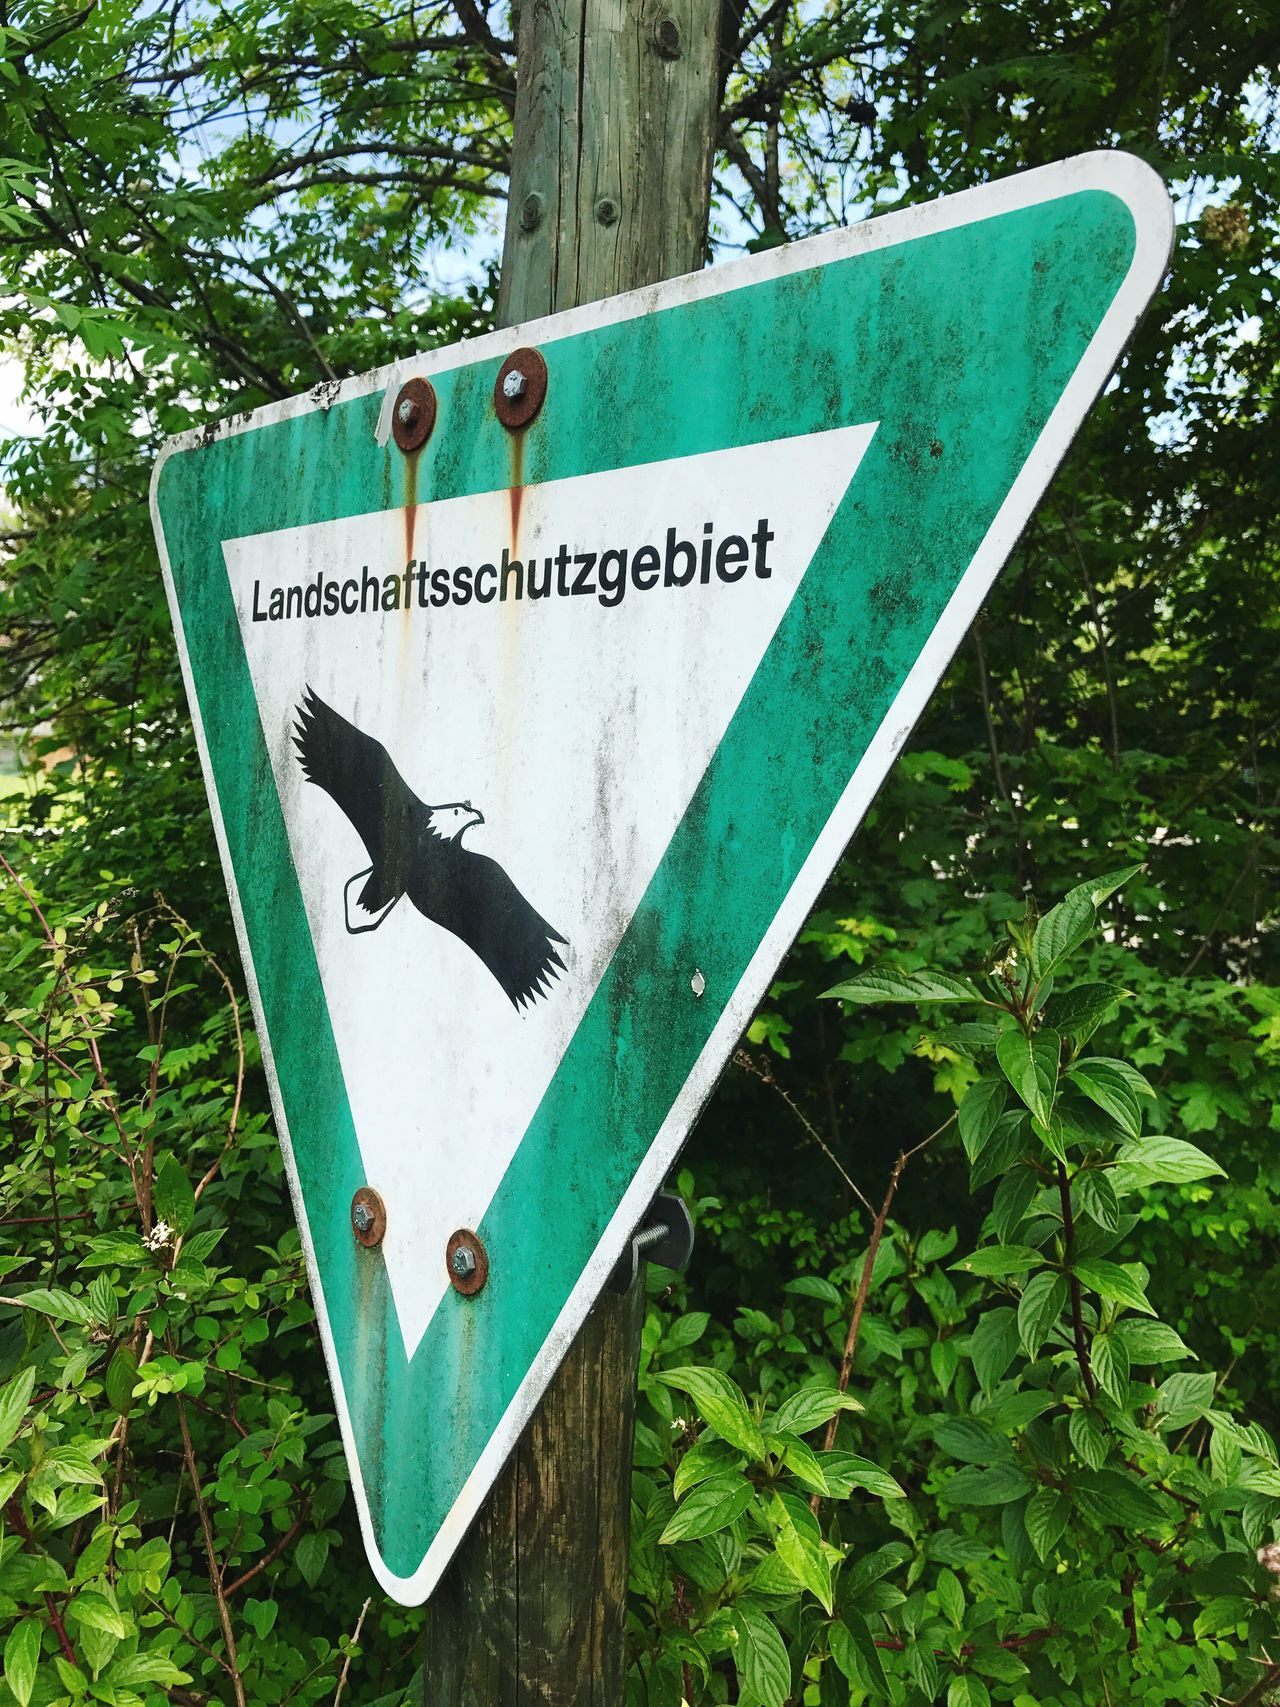 Landschaftsschutzgebiet - protected landscape area sign Text Communication Warning Sign Tree Guidance Day Road Sign Green Color Leaf Signboard Outdoors No People Plant Close-up Nature Landscape Landschaftsschutzgebiet